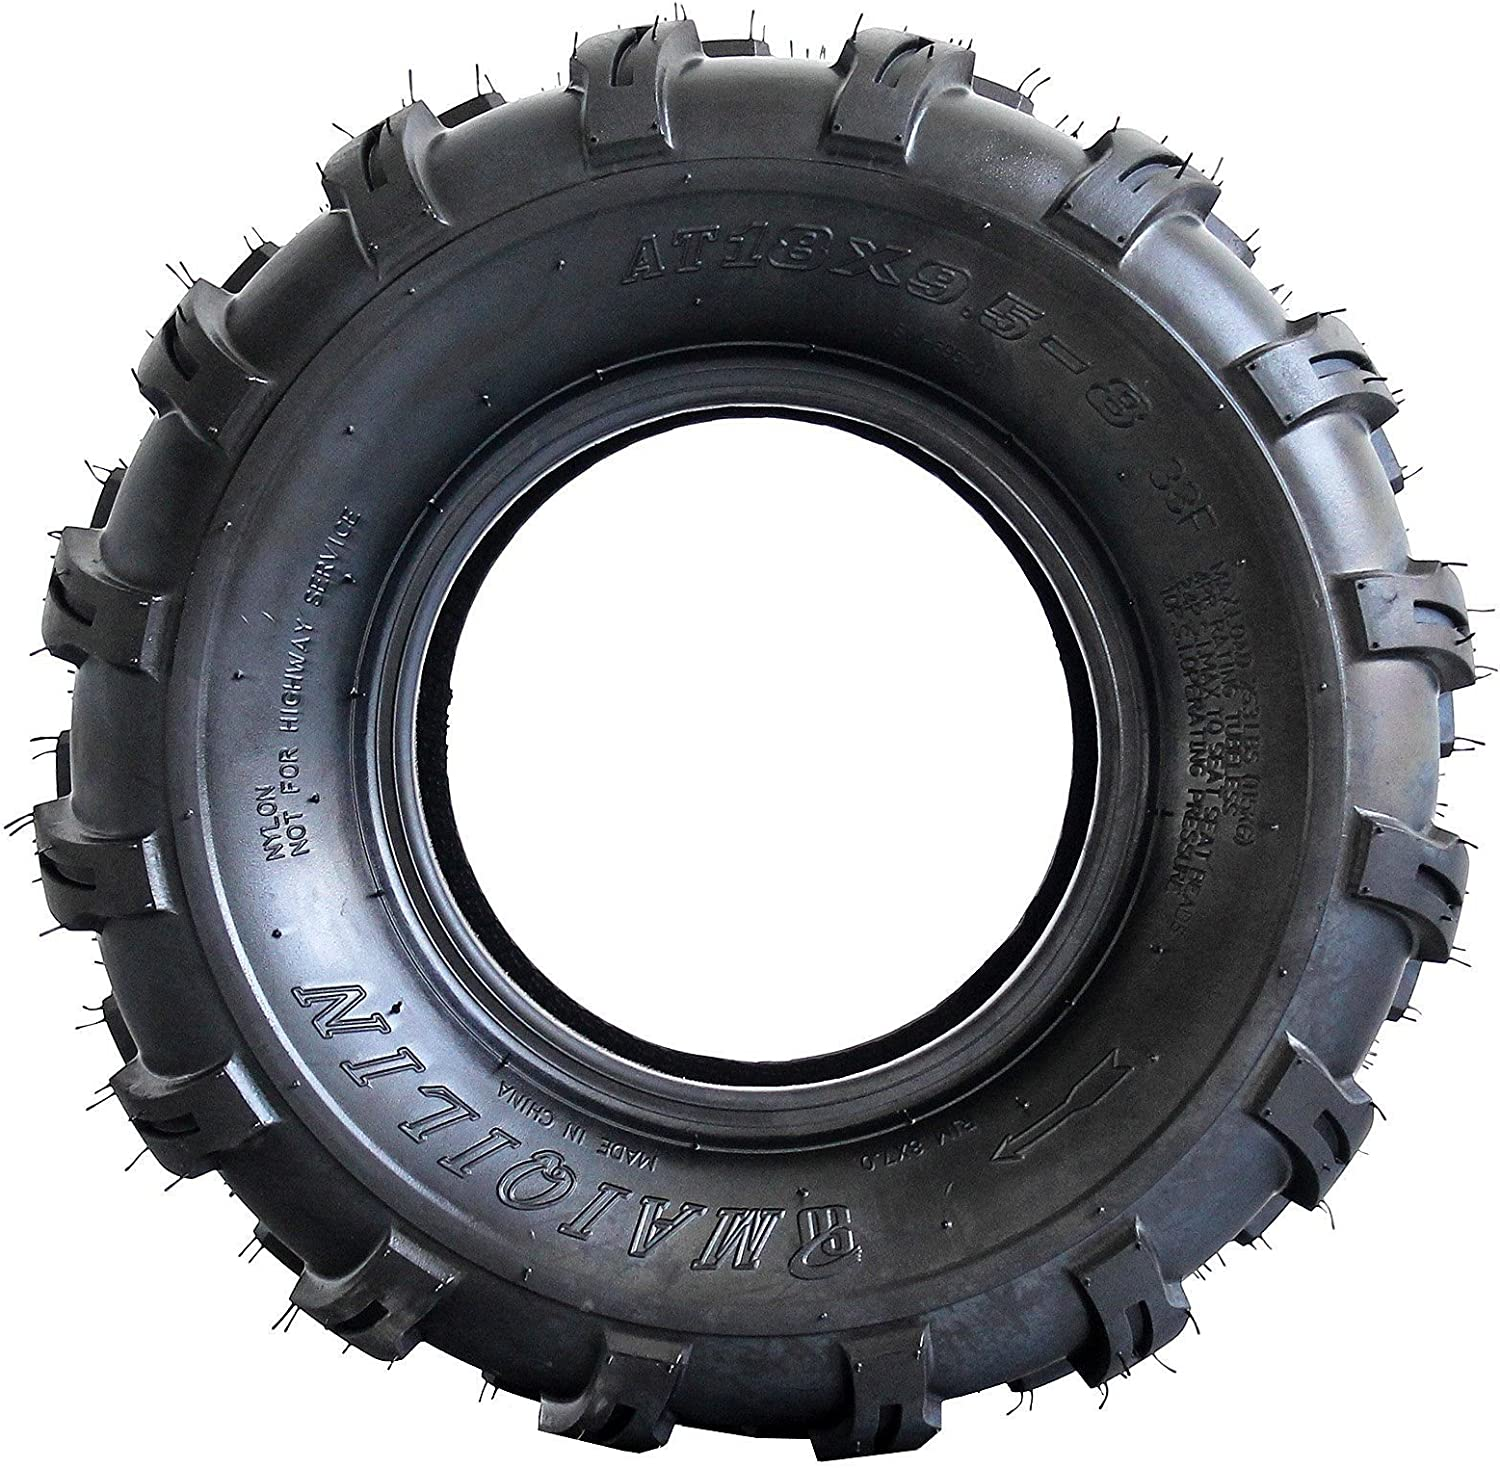 1 pcs 18X9.5-8 Tires 4 PLY ATV Tire for 110cc 125cc Gokart Quad Buggy 4 wheels